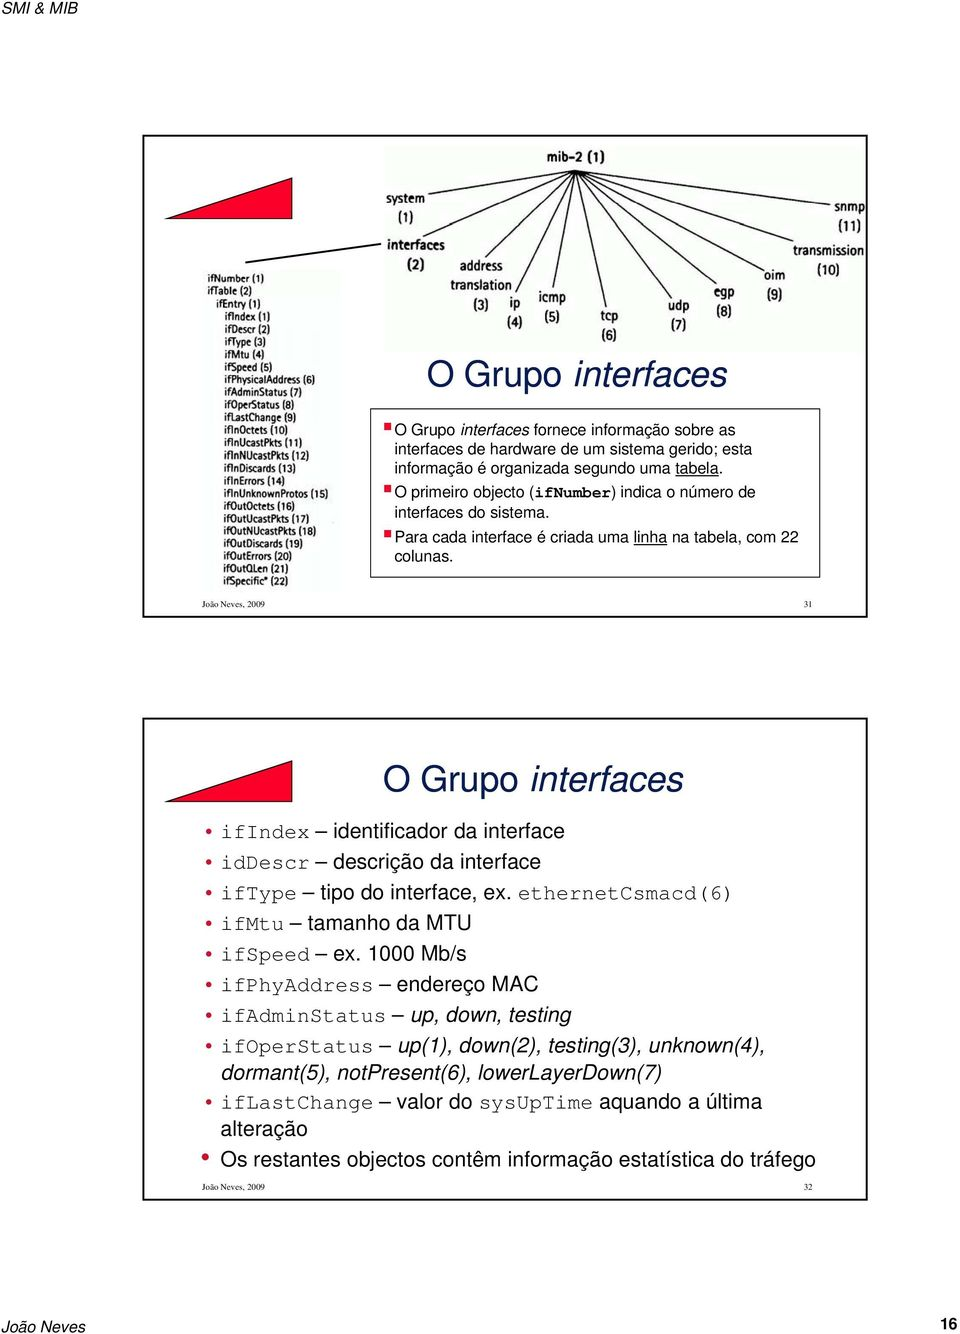 João Neves, 2009 31 O Grupo interfaces ifindex identificador da interface iddescr descrição da interface iftype tipo do interface, ex. ethernetcsmacd(6) ifmtu tamanho da MTU ifspeed ex.